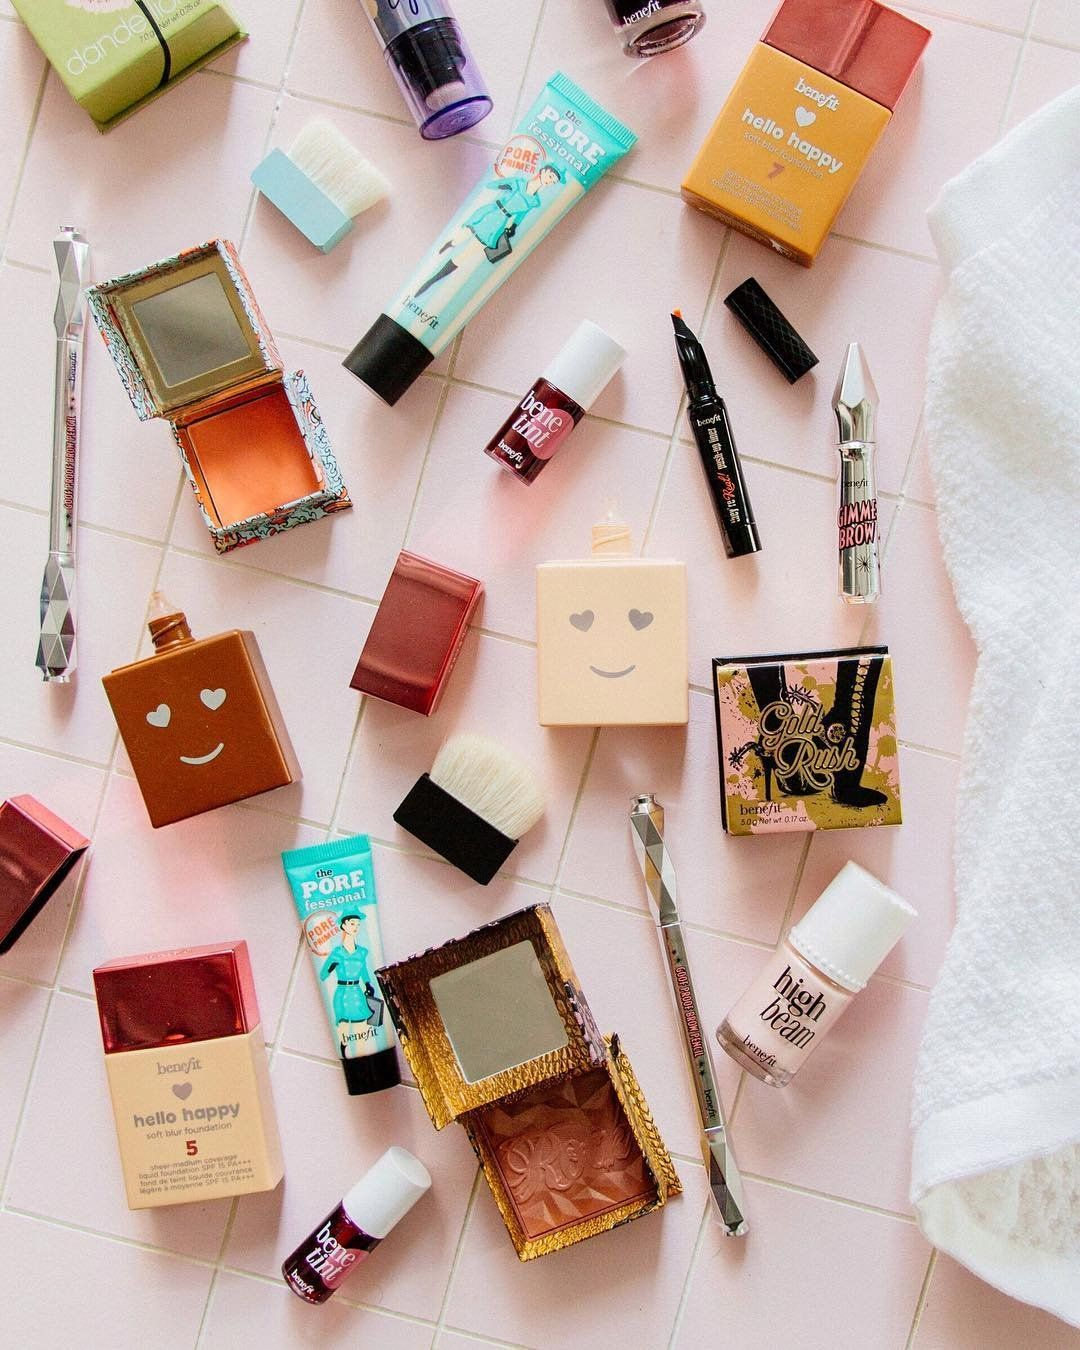 Benefit Cosmetics Giveaway Urbanoutfitters Uobeauty Benefit